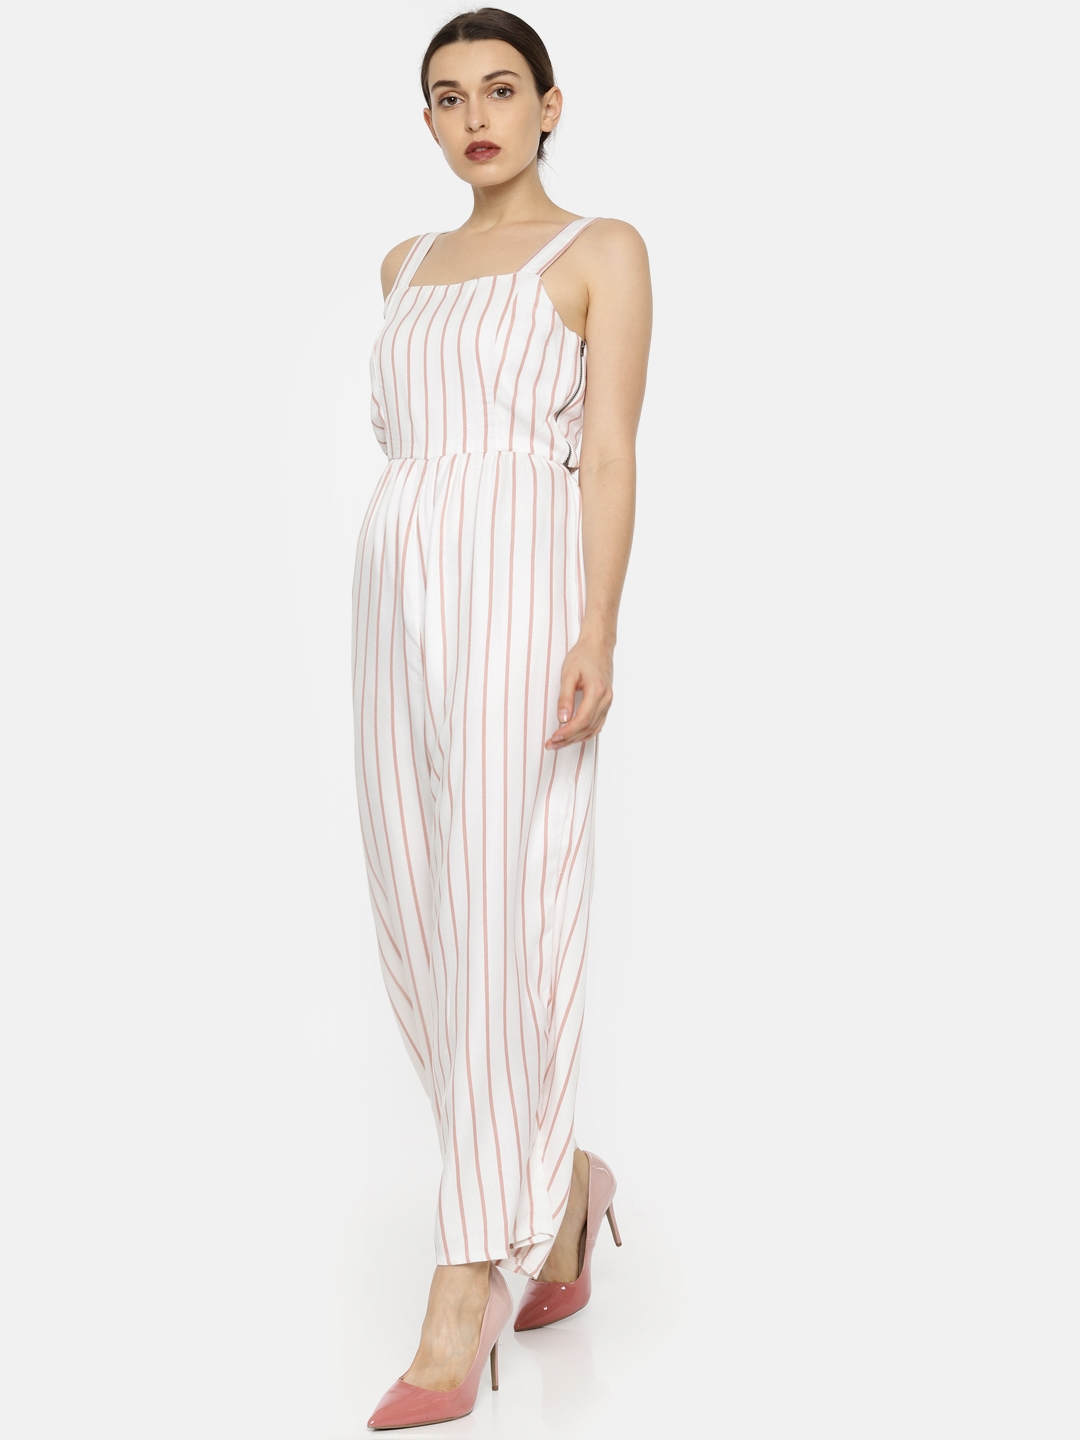 ad1536ba856 Buy Vero Moda White   Pink Striped Basic Jumpsuit - Jumpsuit for ...